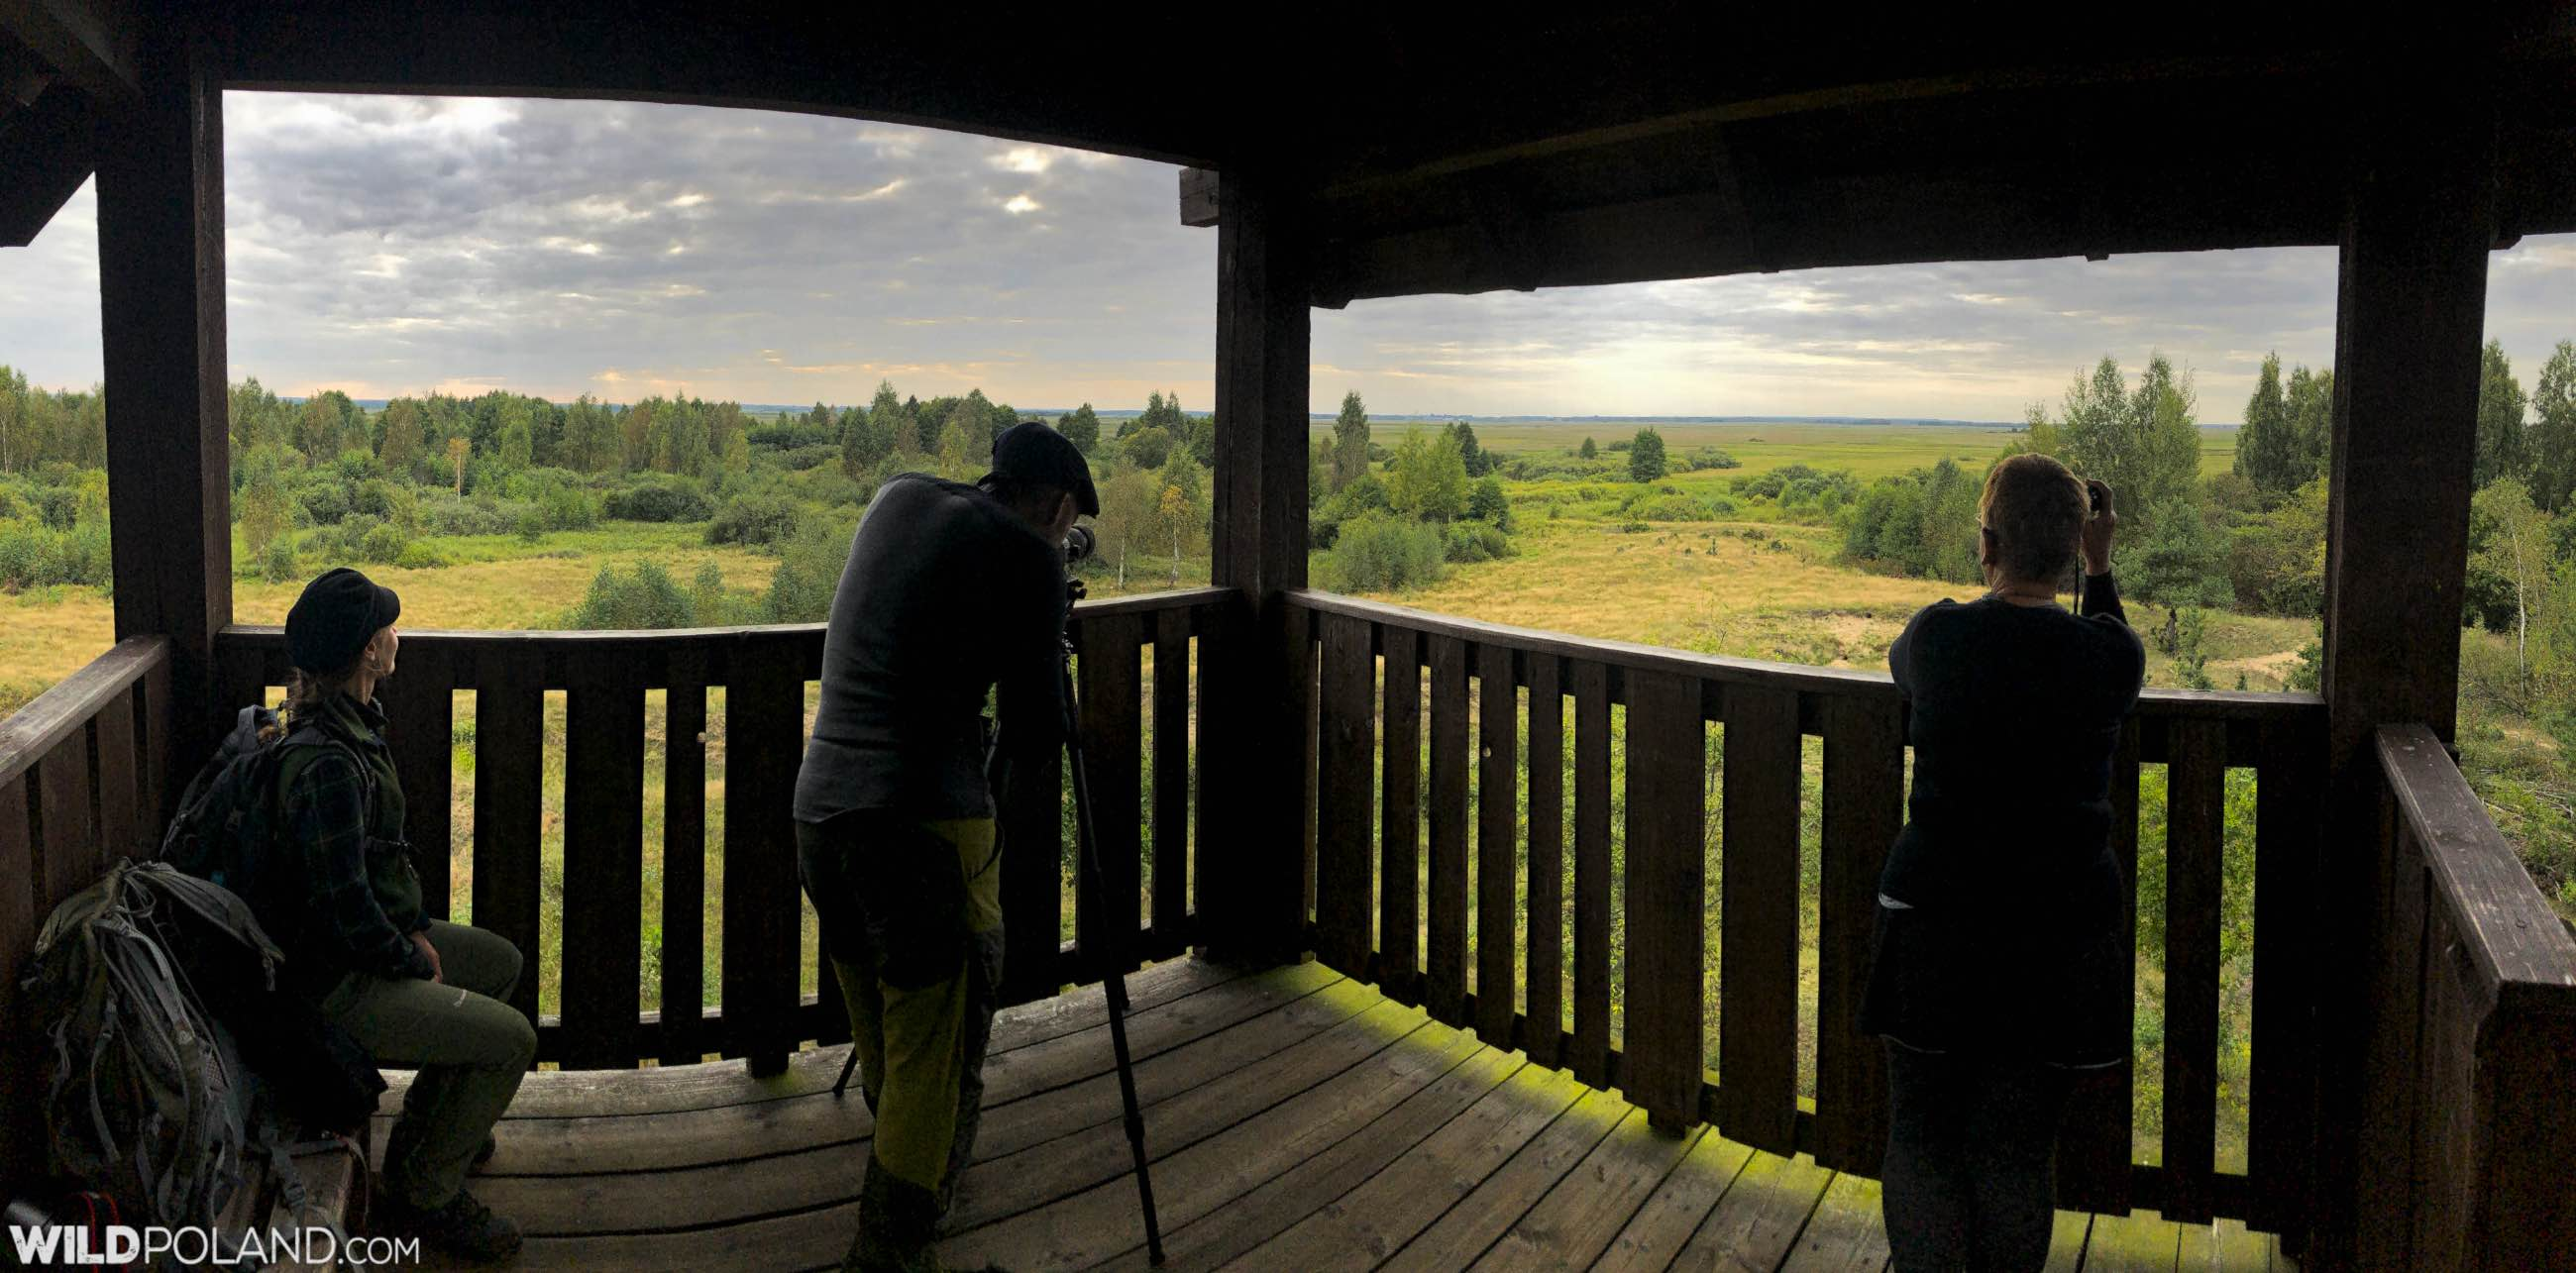 Elk (Moose) watching in the Biebrza Marshes